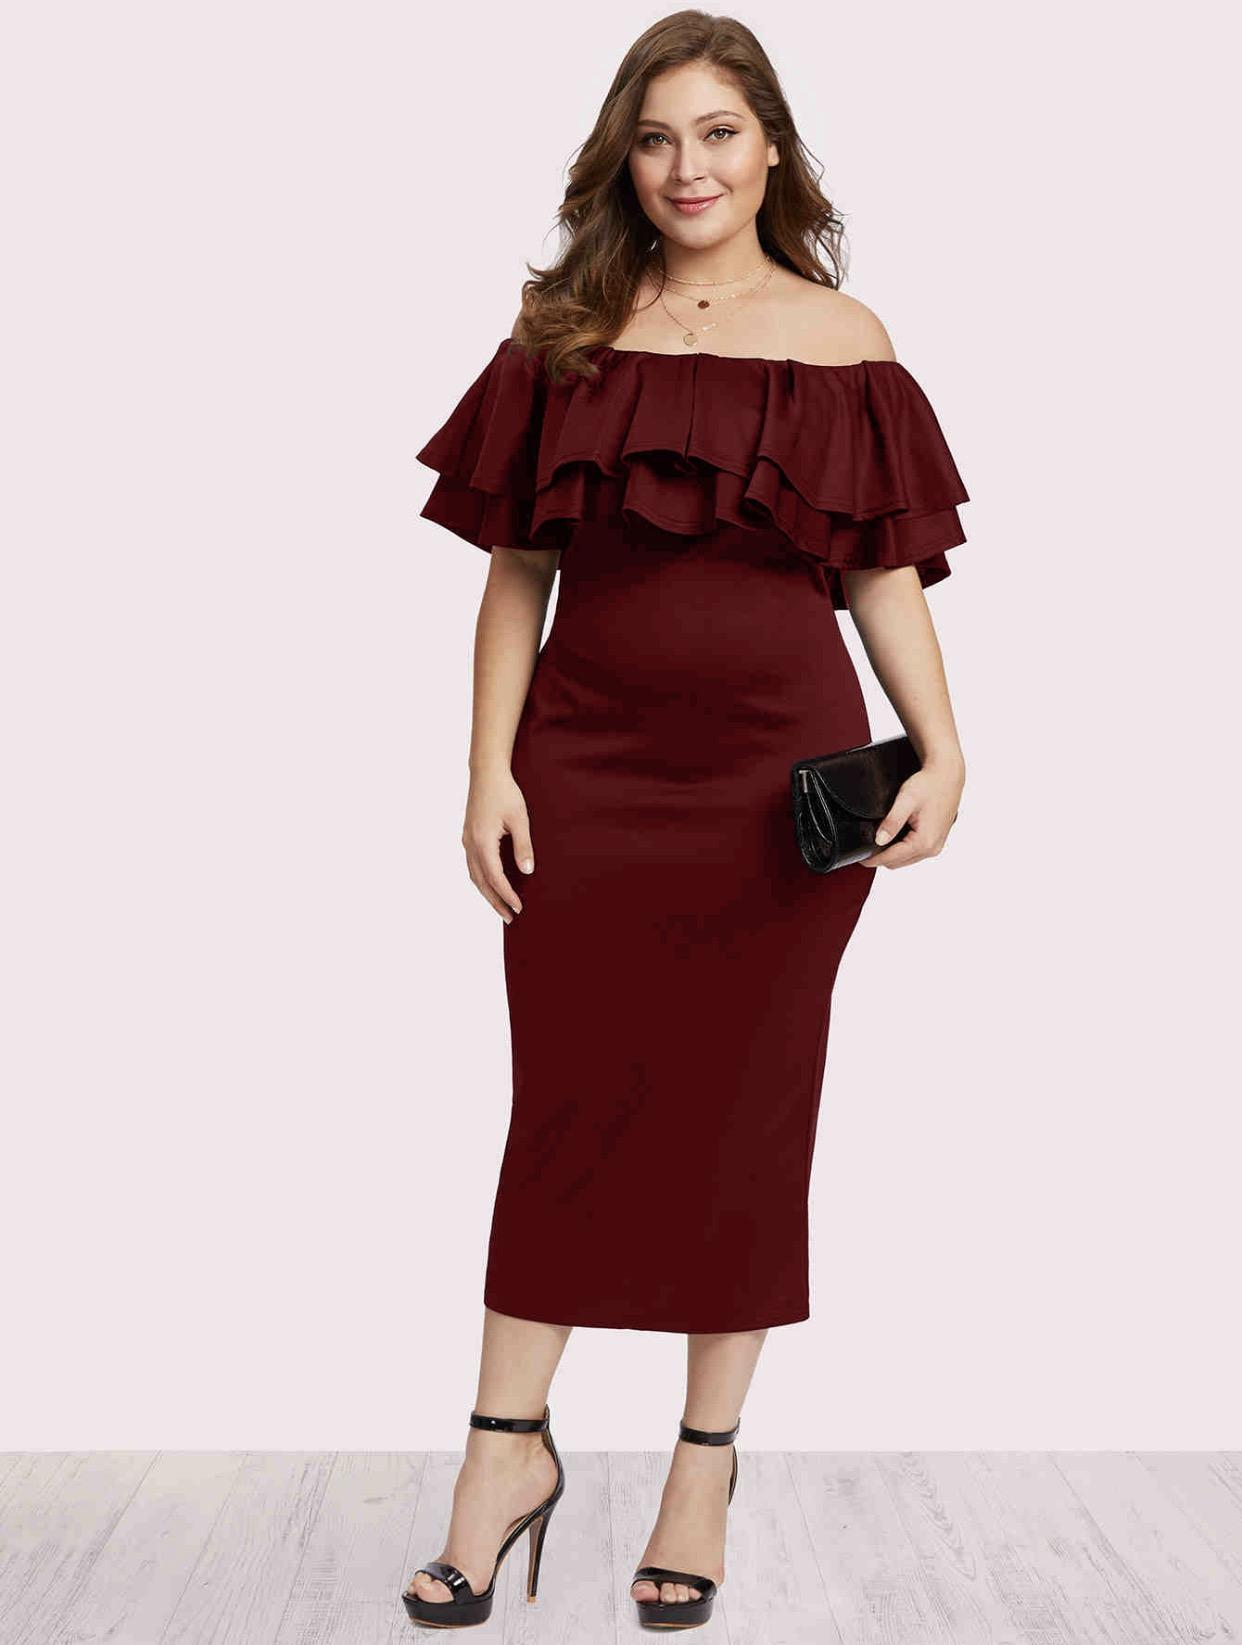 2bdede1a6192 Plus Size Dresses for sale - Plus Size Maxi Dress Online Deals ...